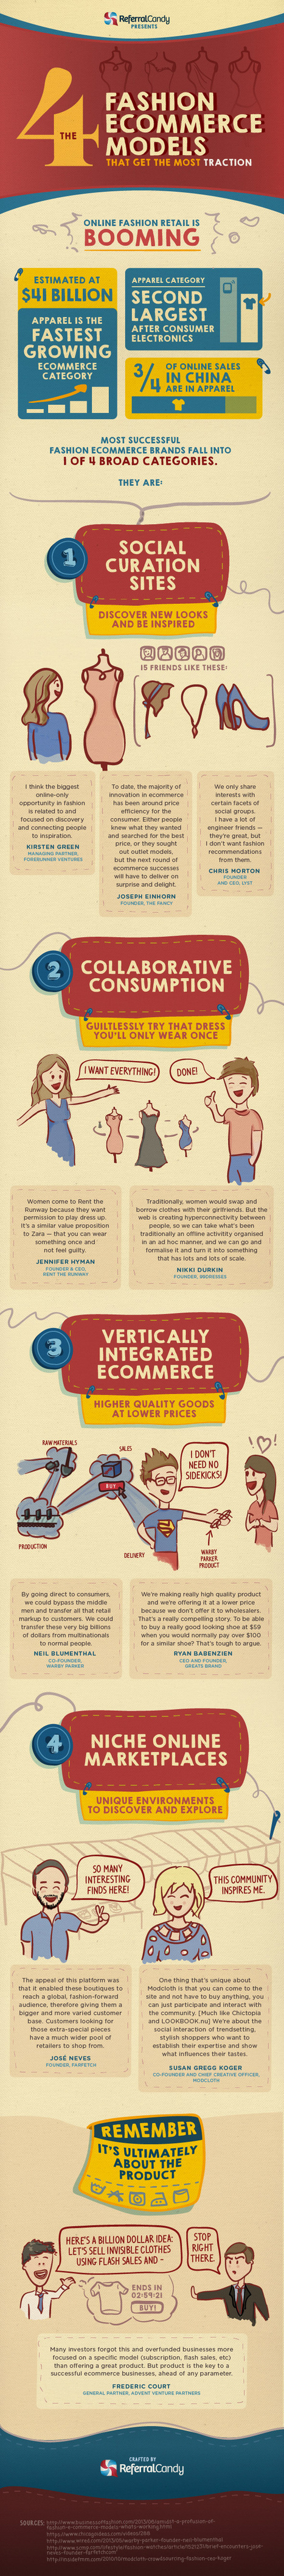 The 4 Fashion Ecommerce Models That Get The Most Traction [Infographic] - ReferralCandy | WHAT'S AROUND ME- VEILLE ENVIRONNEMENTALE | Scoop.it